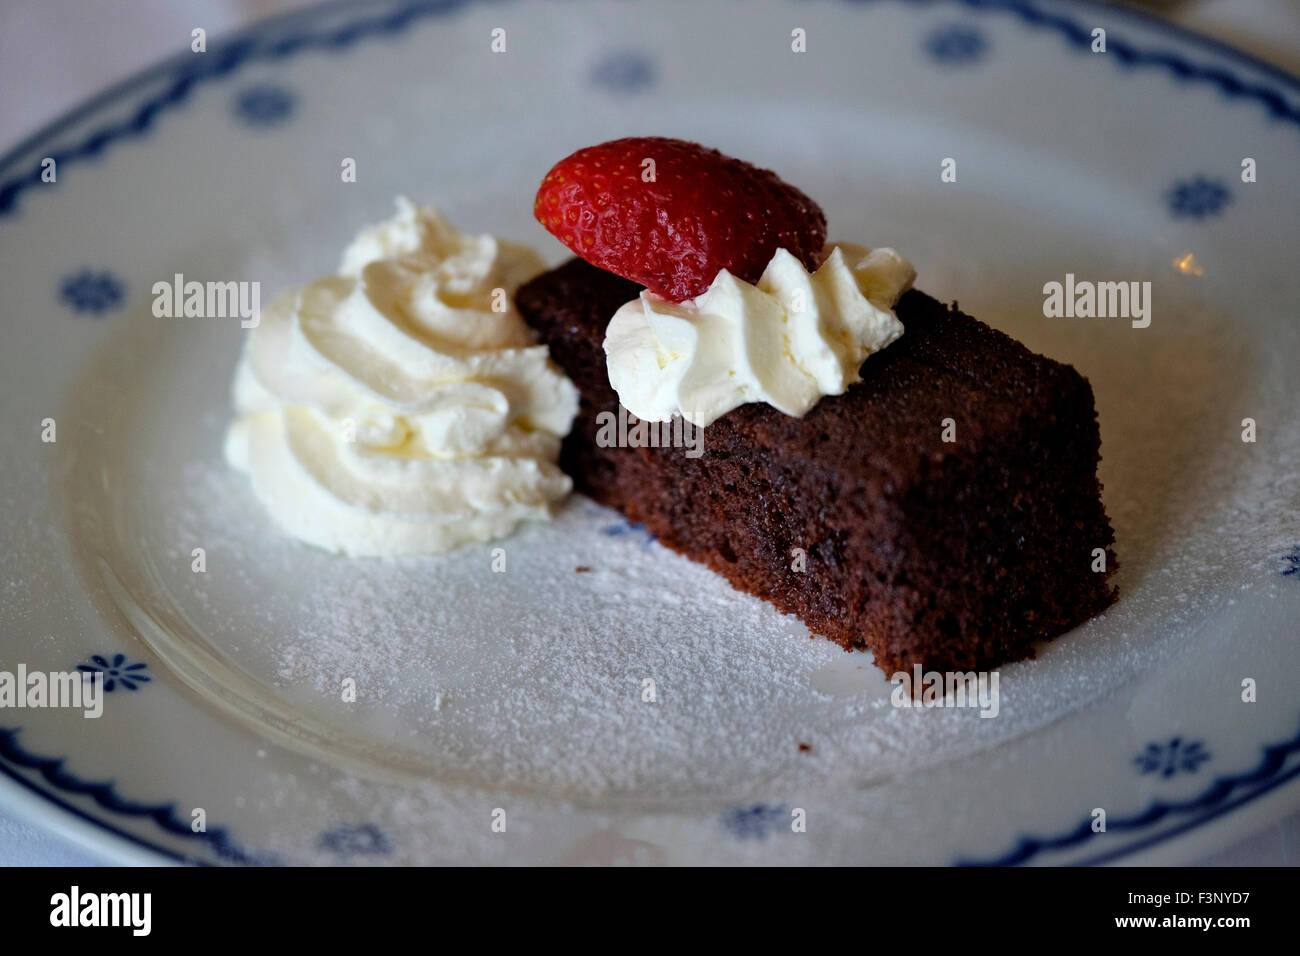 Chocolate cake dessert with whipped cream and a strawberry - Stock Image